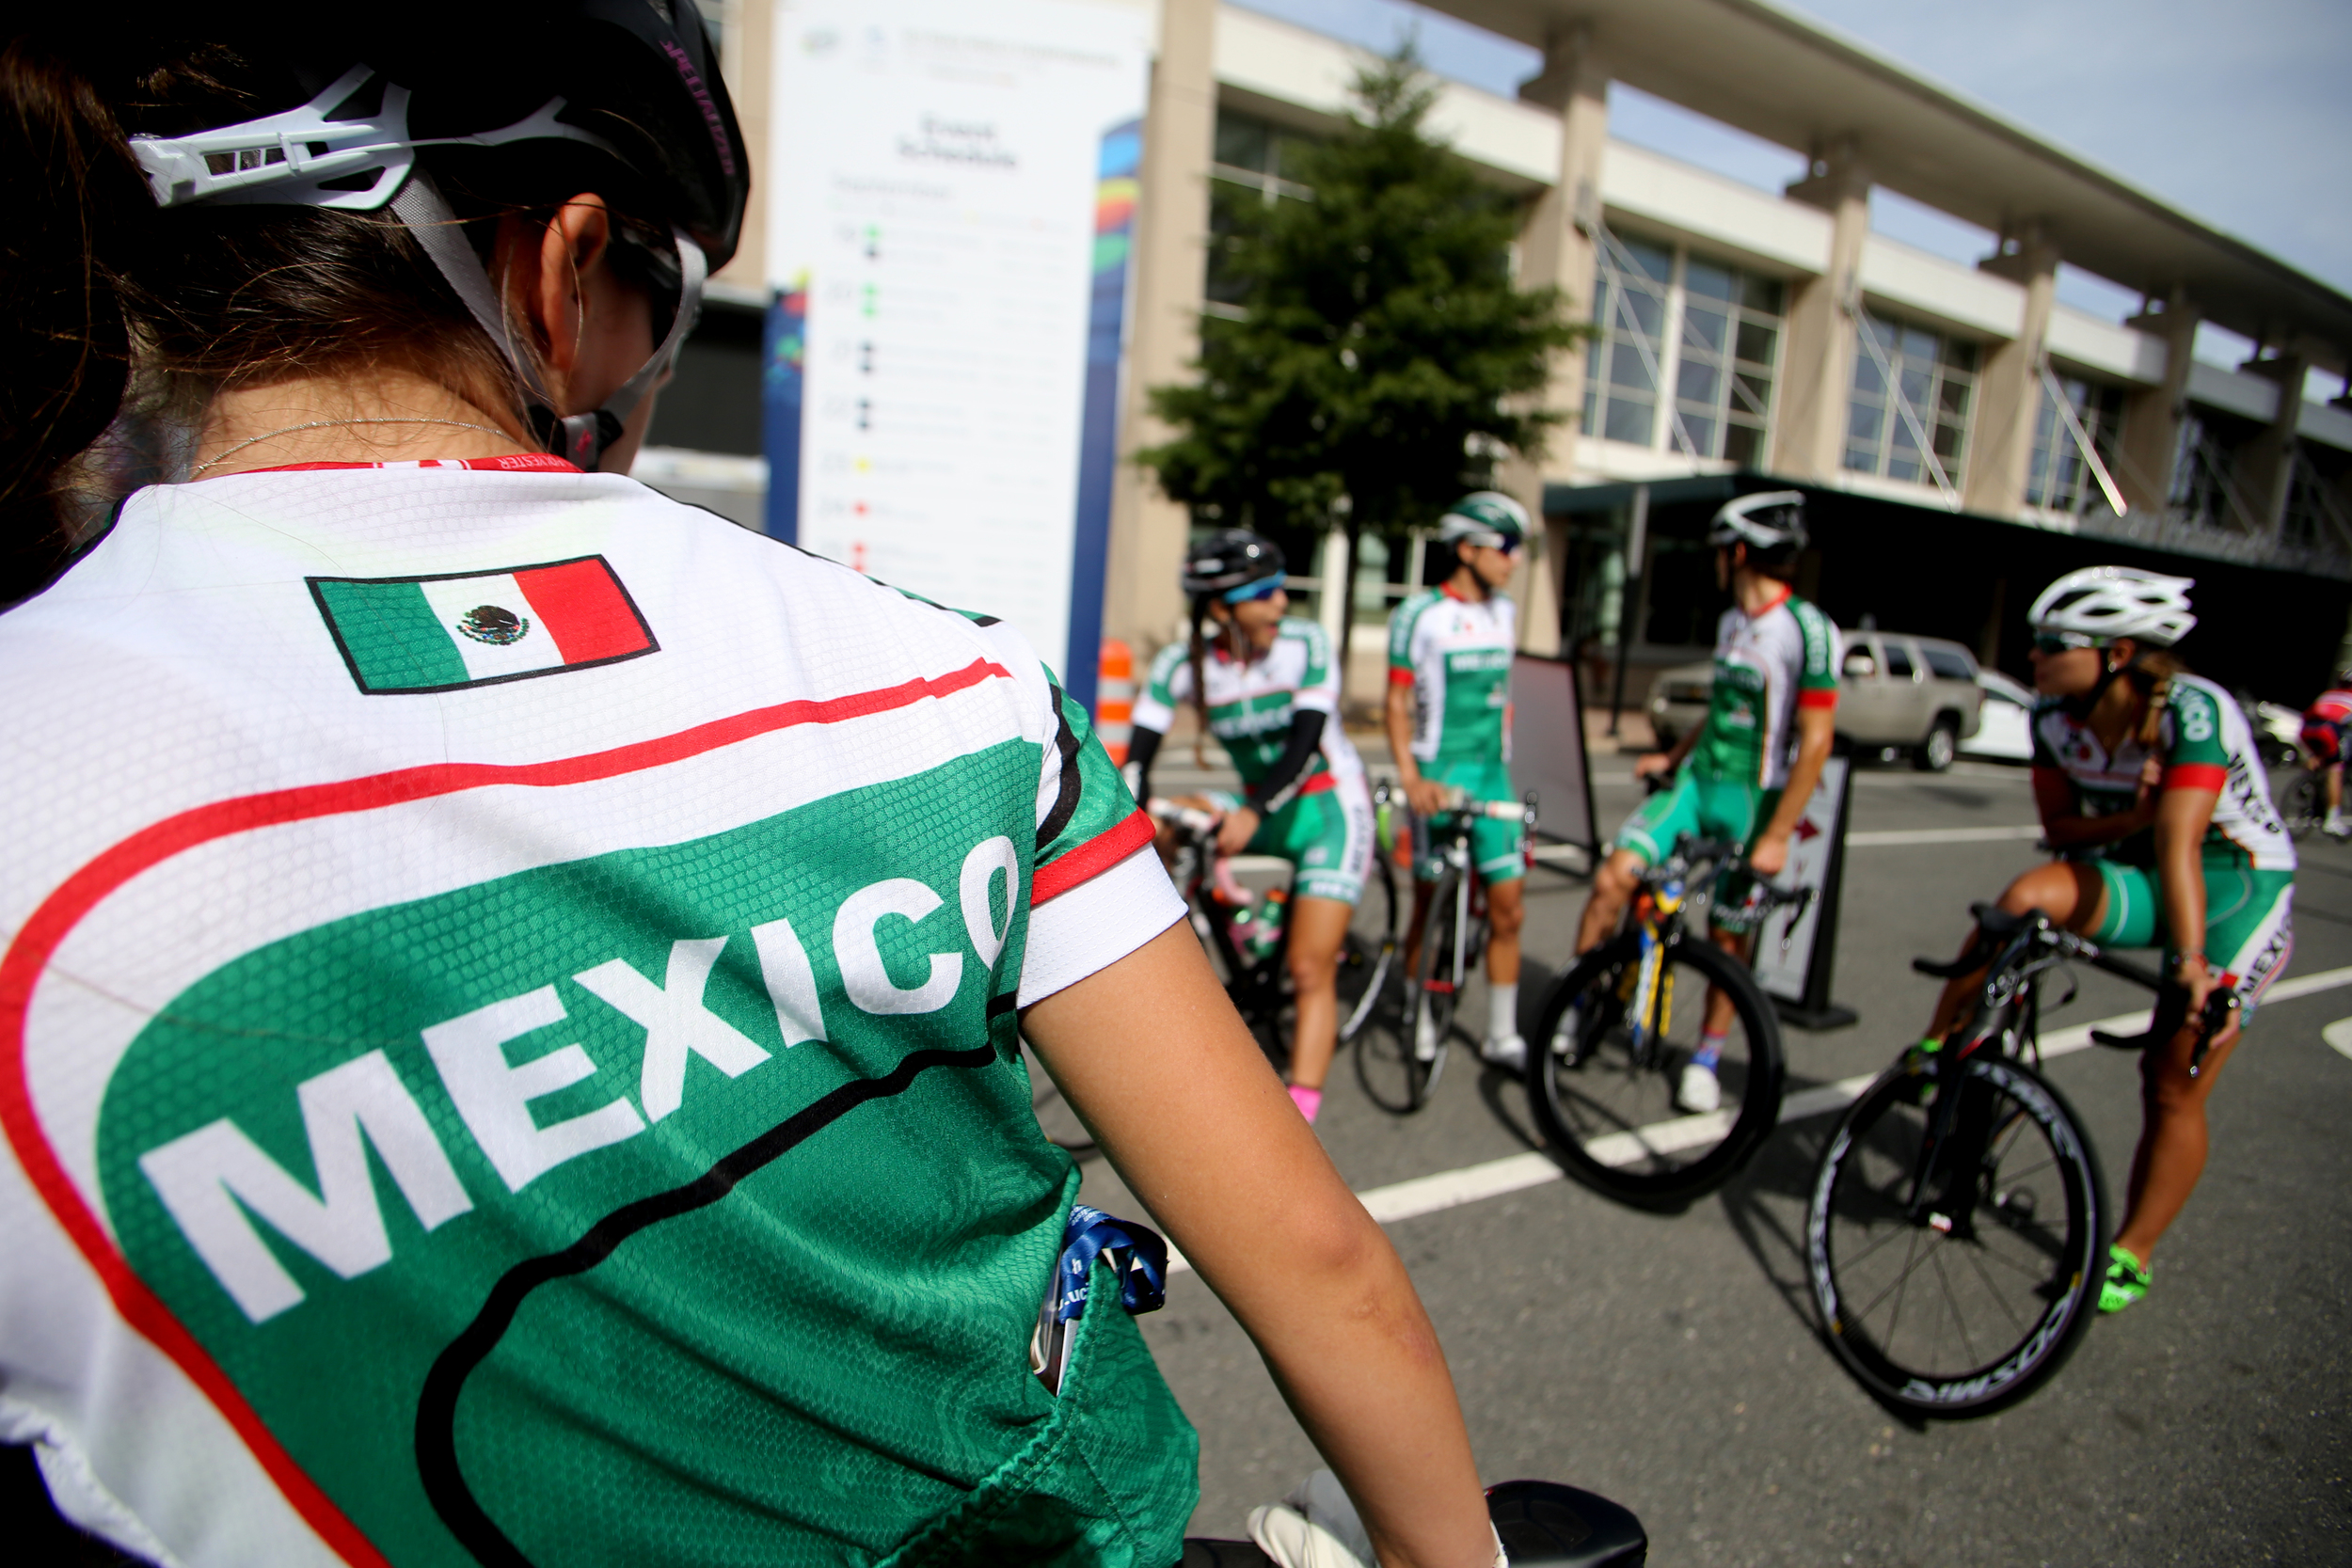 Members of the Mexican cycling team prepare to head out for the Road Circuit Training portion of the UCI Road World Championships cycling races in Richmond, Va., Thursday, Sept. 24, 2015.(AP Photo/Jason Hirschfeld)